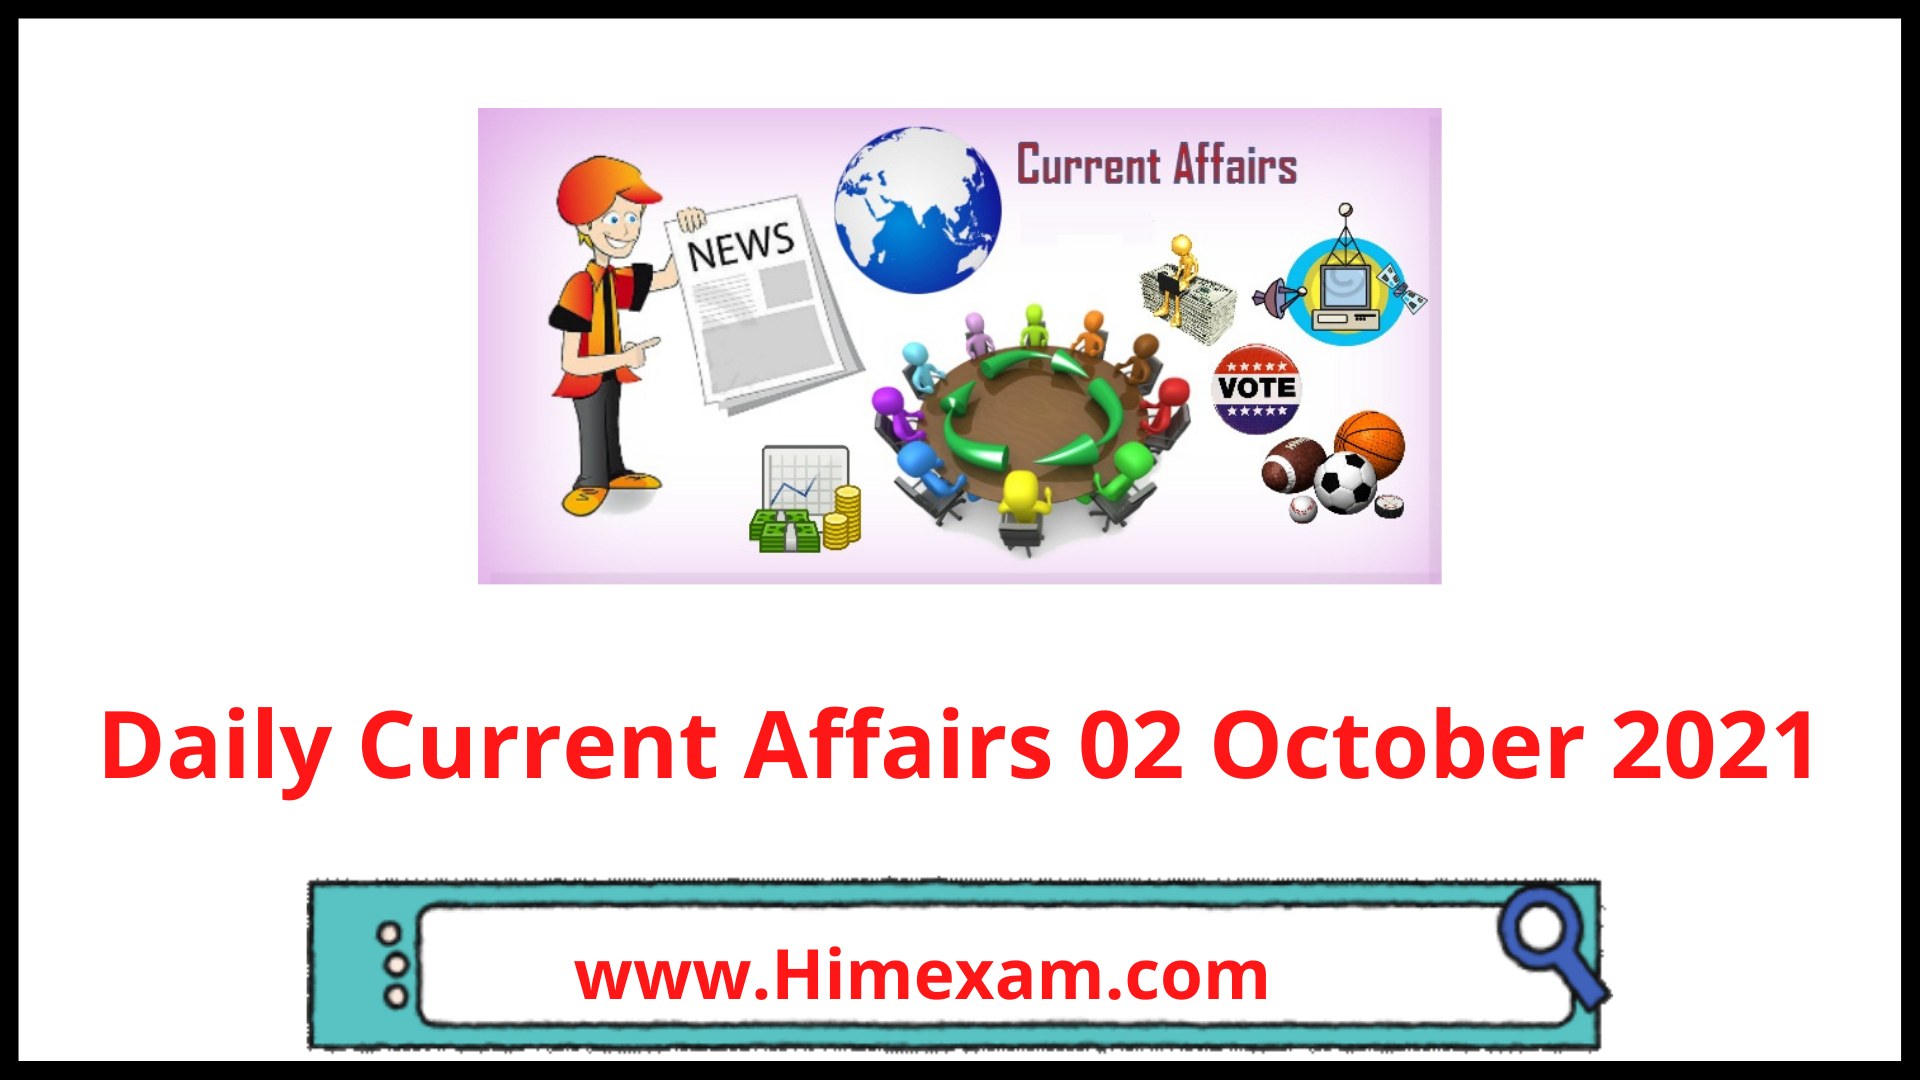 Daily Current Affairs 02 October 2021